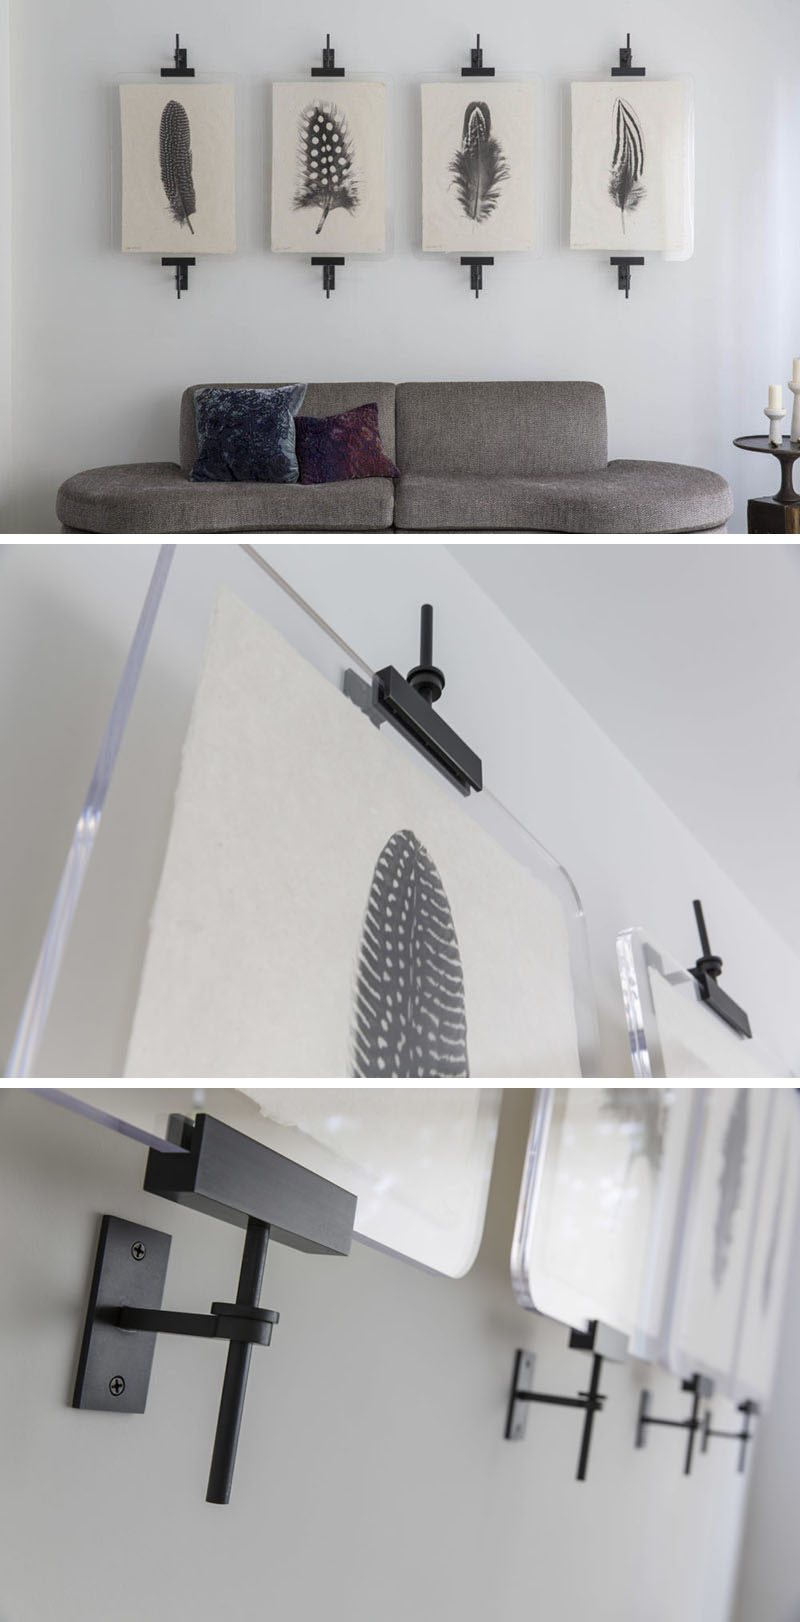 Wall Art Display Ideas - These contemporary industrial metal clamps are an alternative way to display a collection. Amuneal has added a new item to their portfolio, called the Modern Easel. It's designed to hang your art on your walls a clean modern way using clamps.